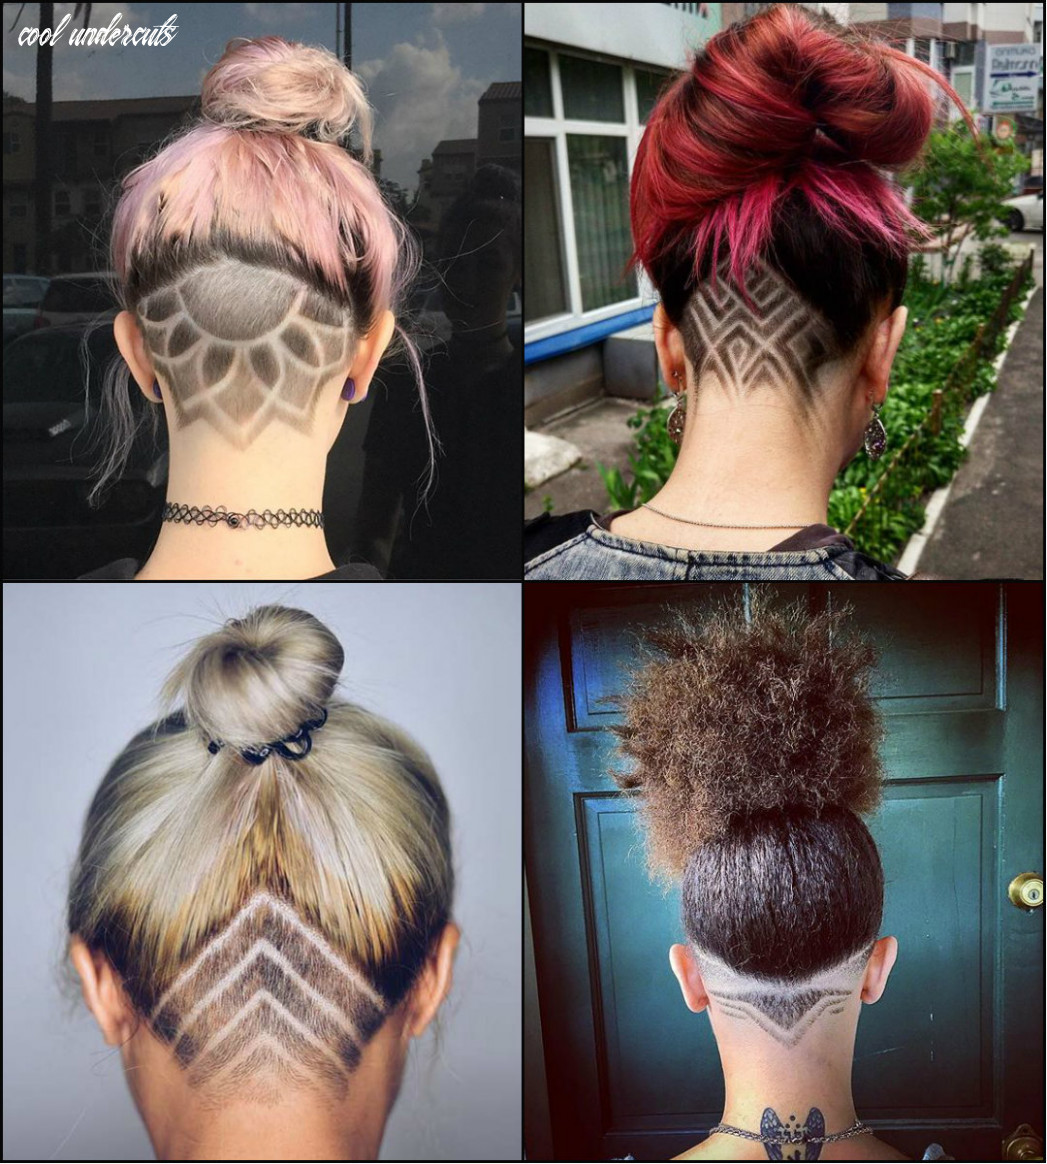 Cool undercut female hairstyles to show off hairstyle 8 cool undercuts